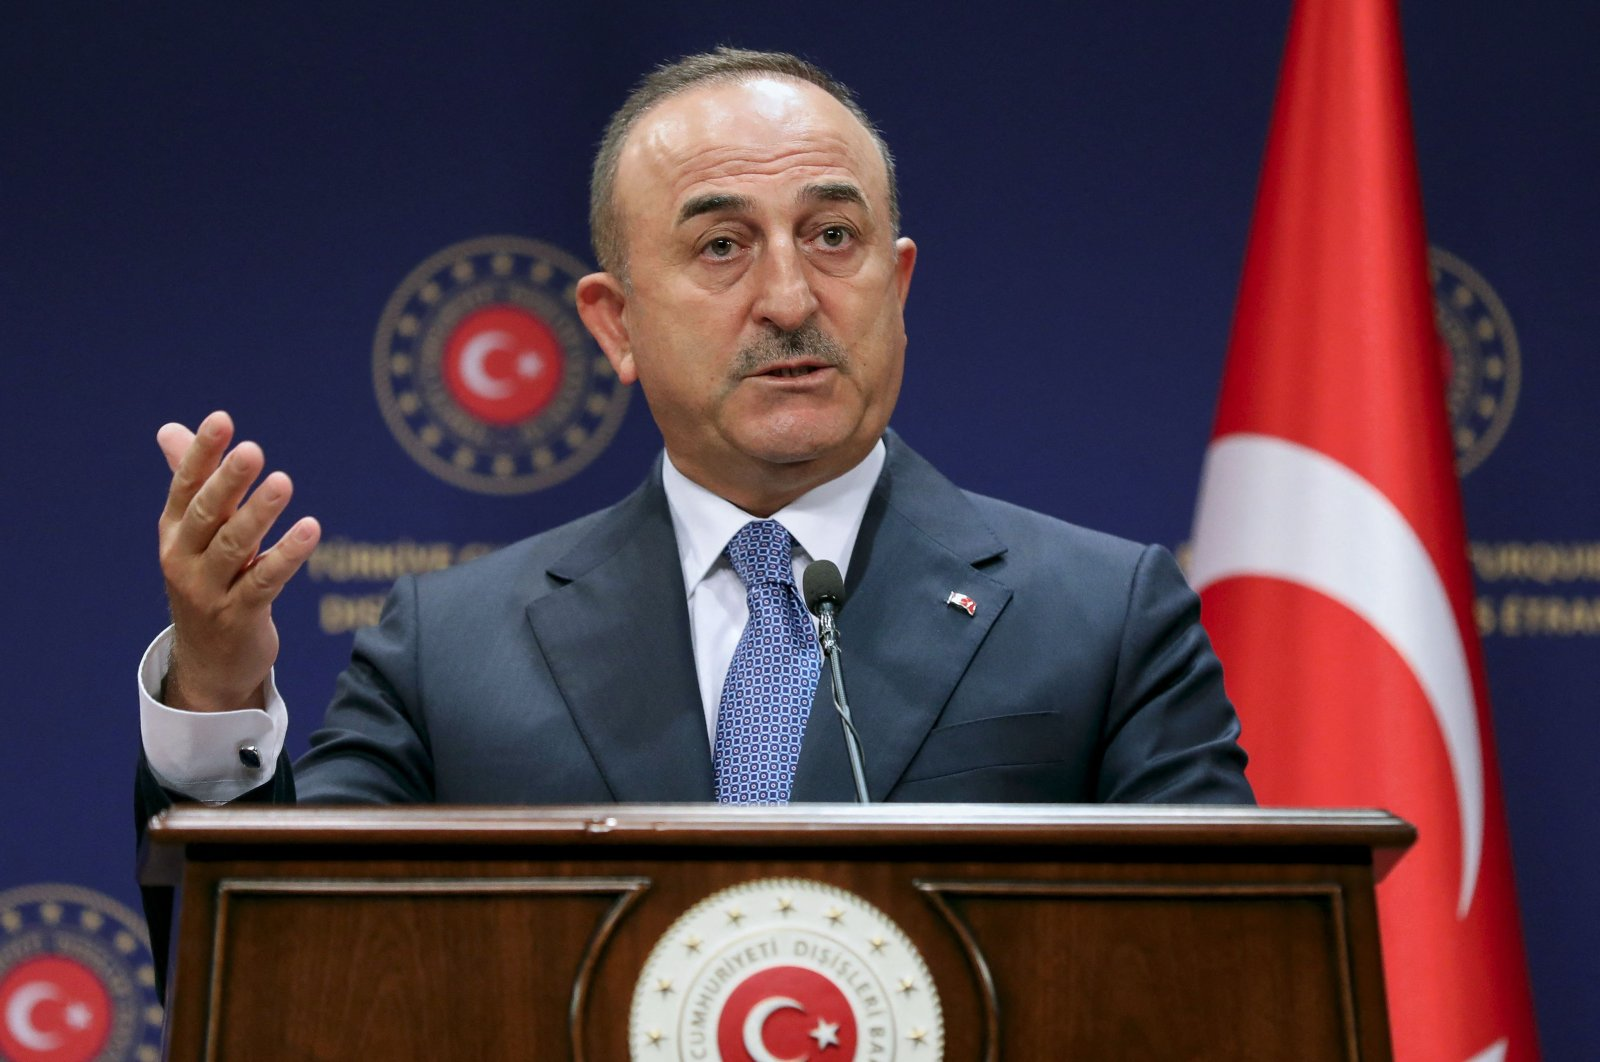 Foreign Minister Mevlüt Çavuşoğlu holds a joint press conference with the Dutch Minister of Foreign Affairs after their meeting in Ankara, Turkey, Sept. 2, 2021. (AFP File Photo)